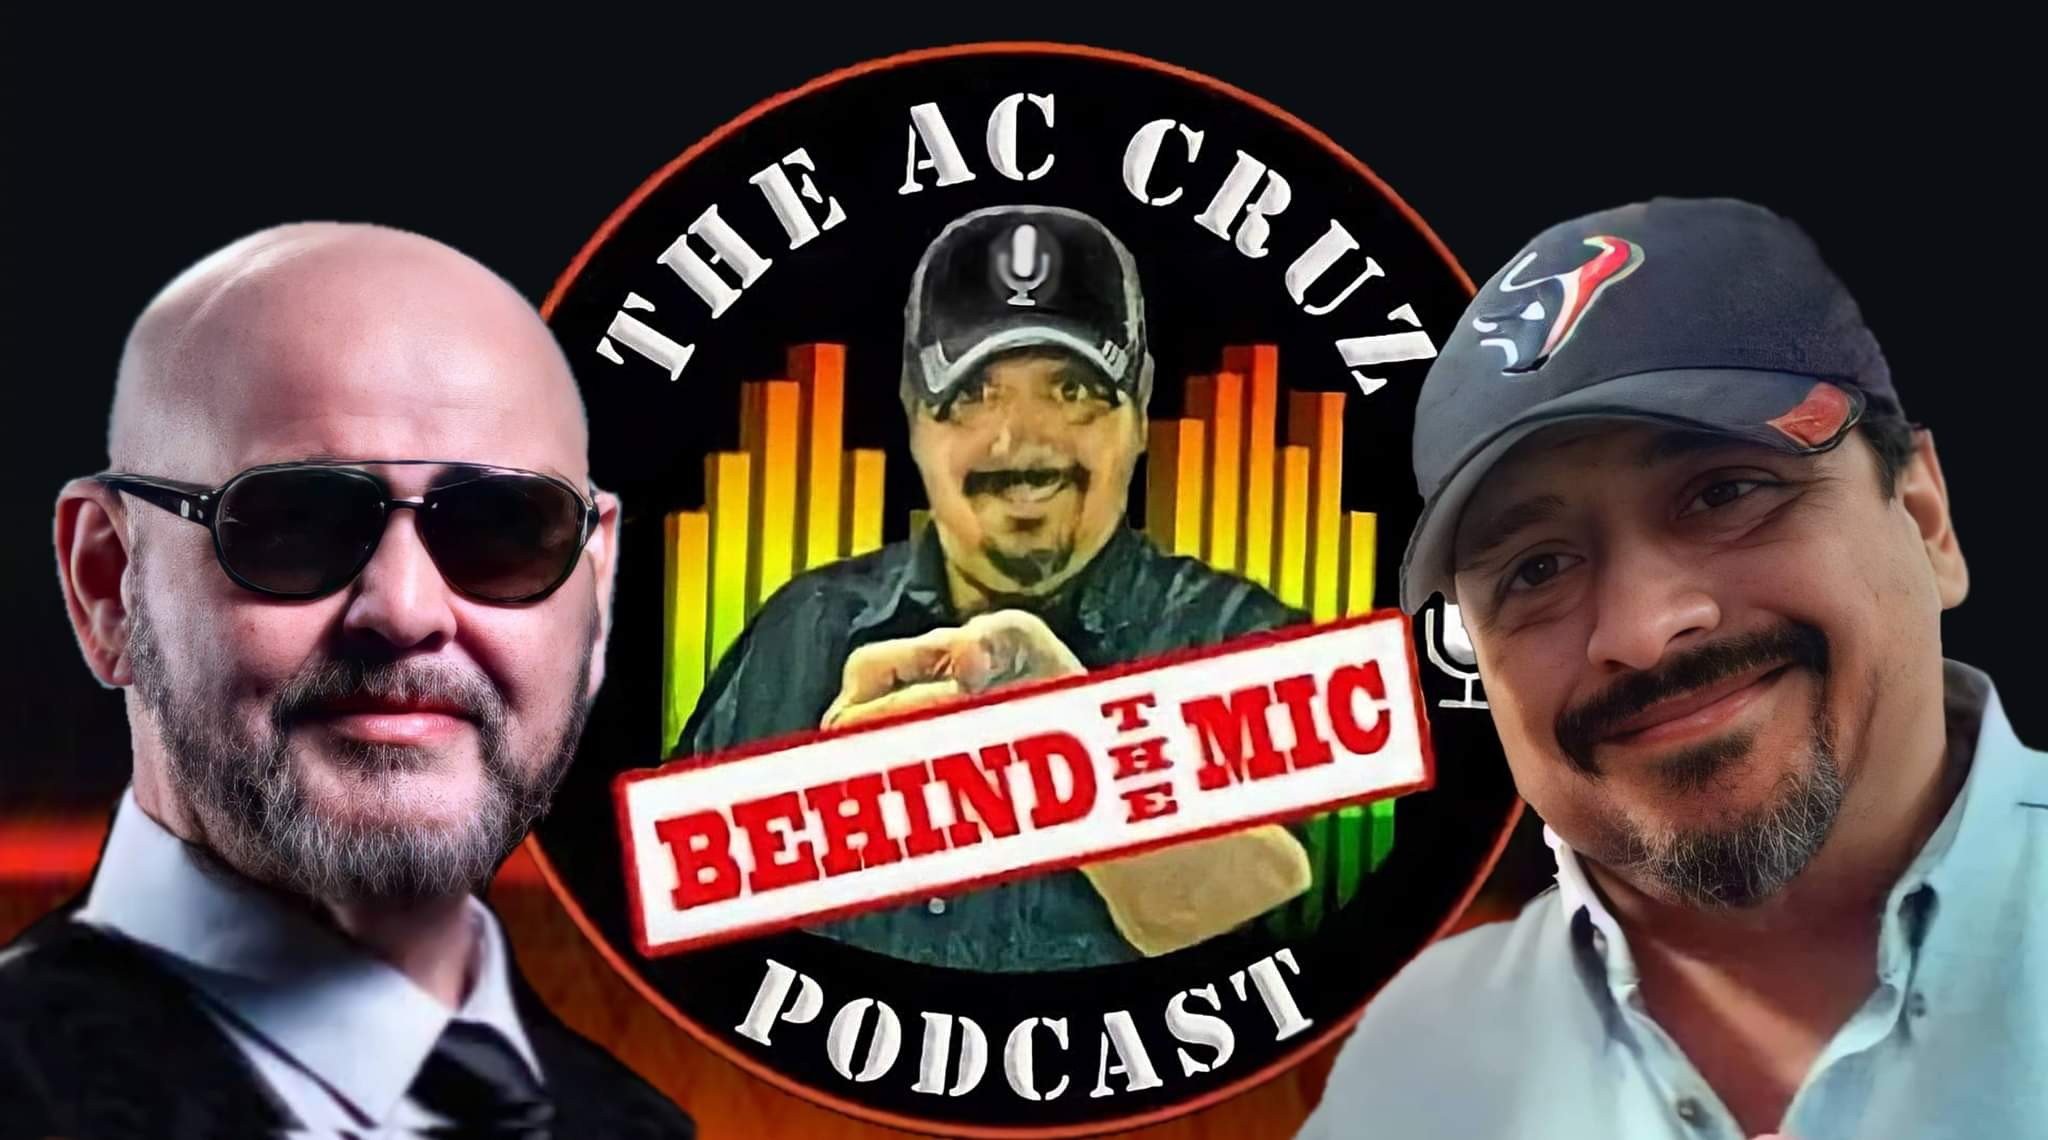 Behind The Mic with Arturo Rodriguez